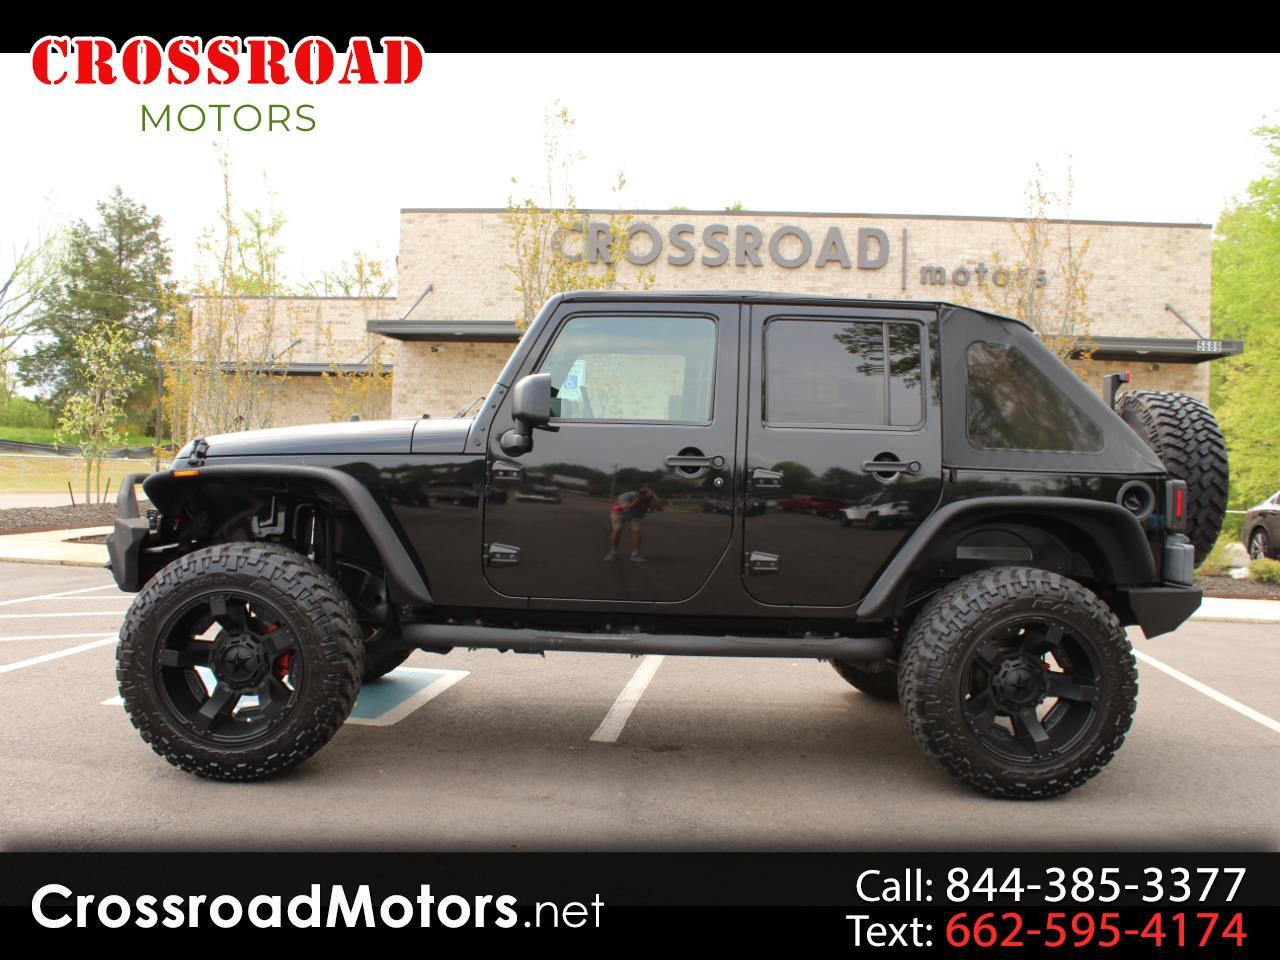 2010 Jeep Wrangler Unlimited RWD 4dr Sport